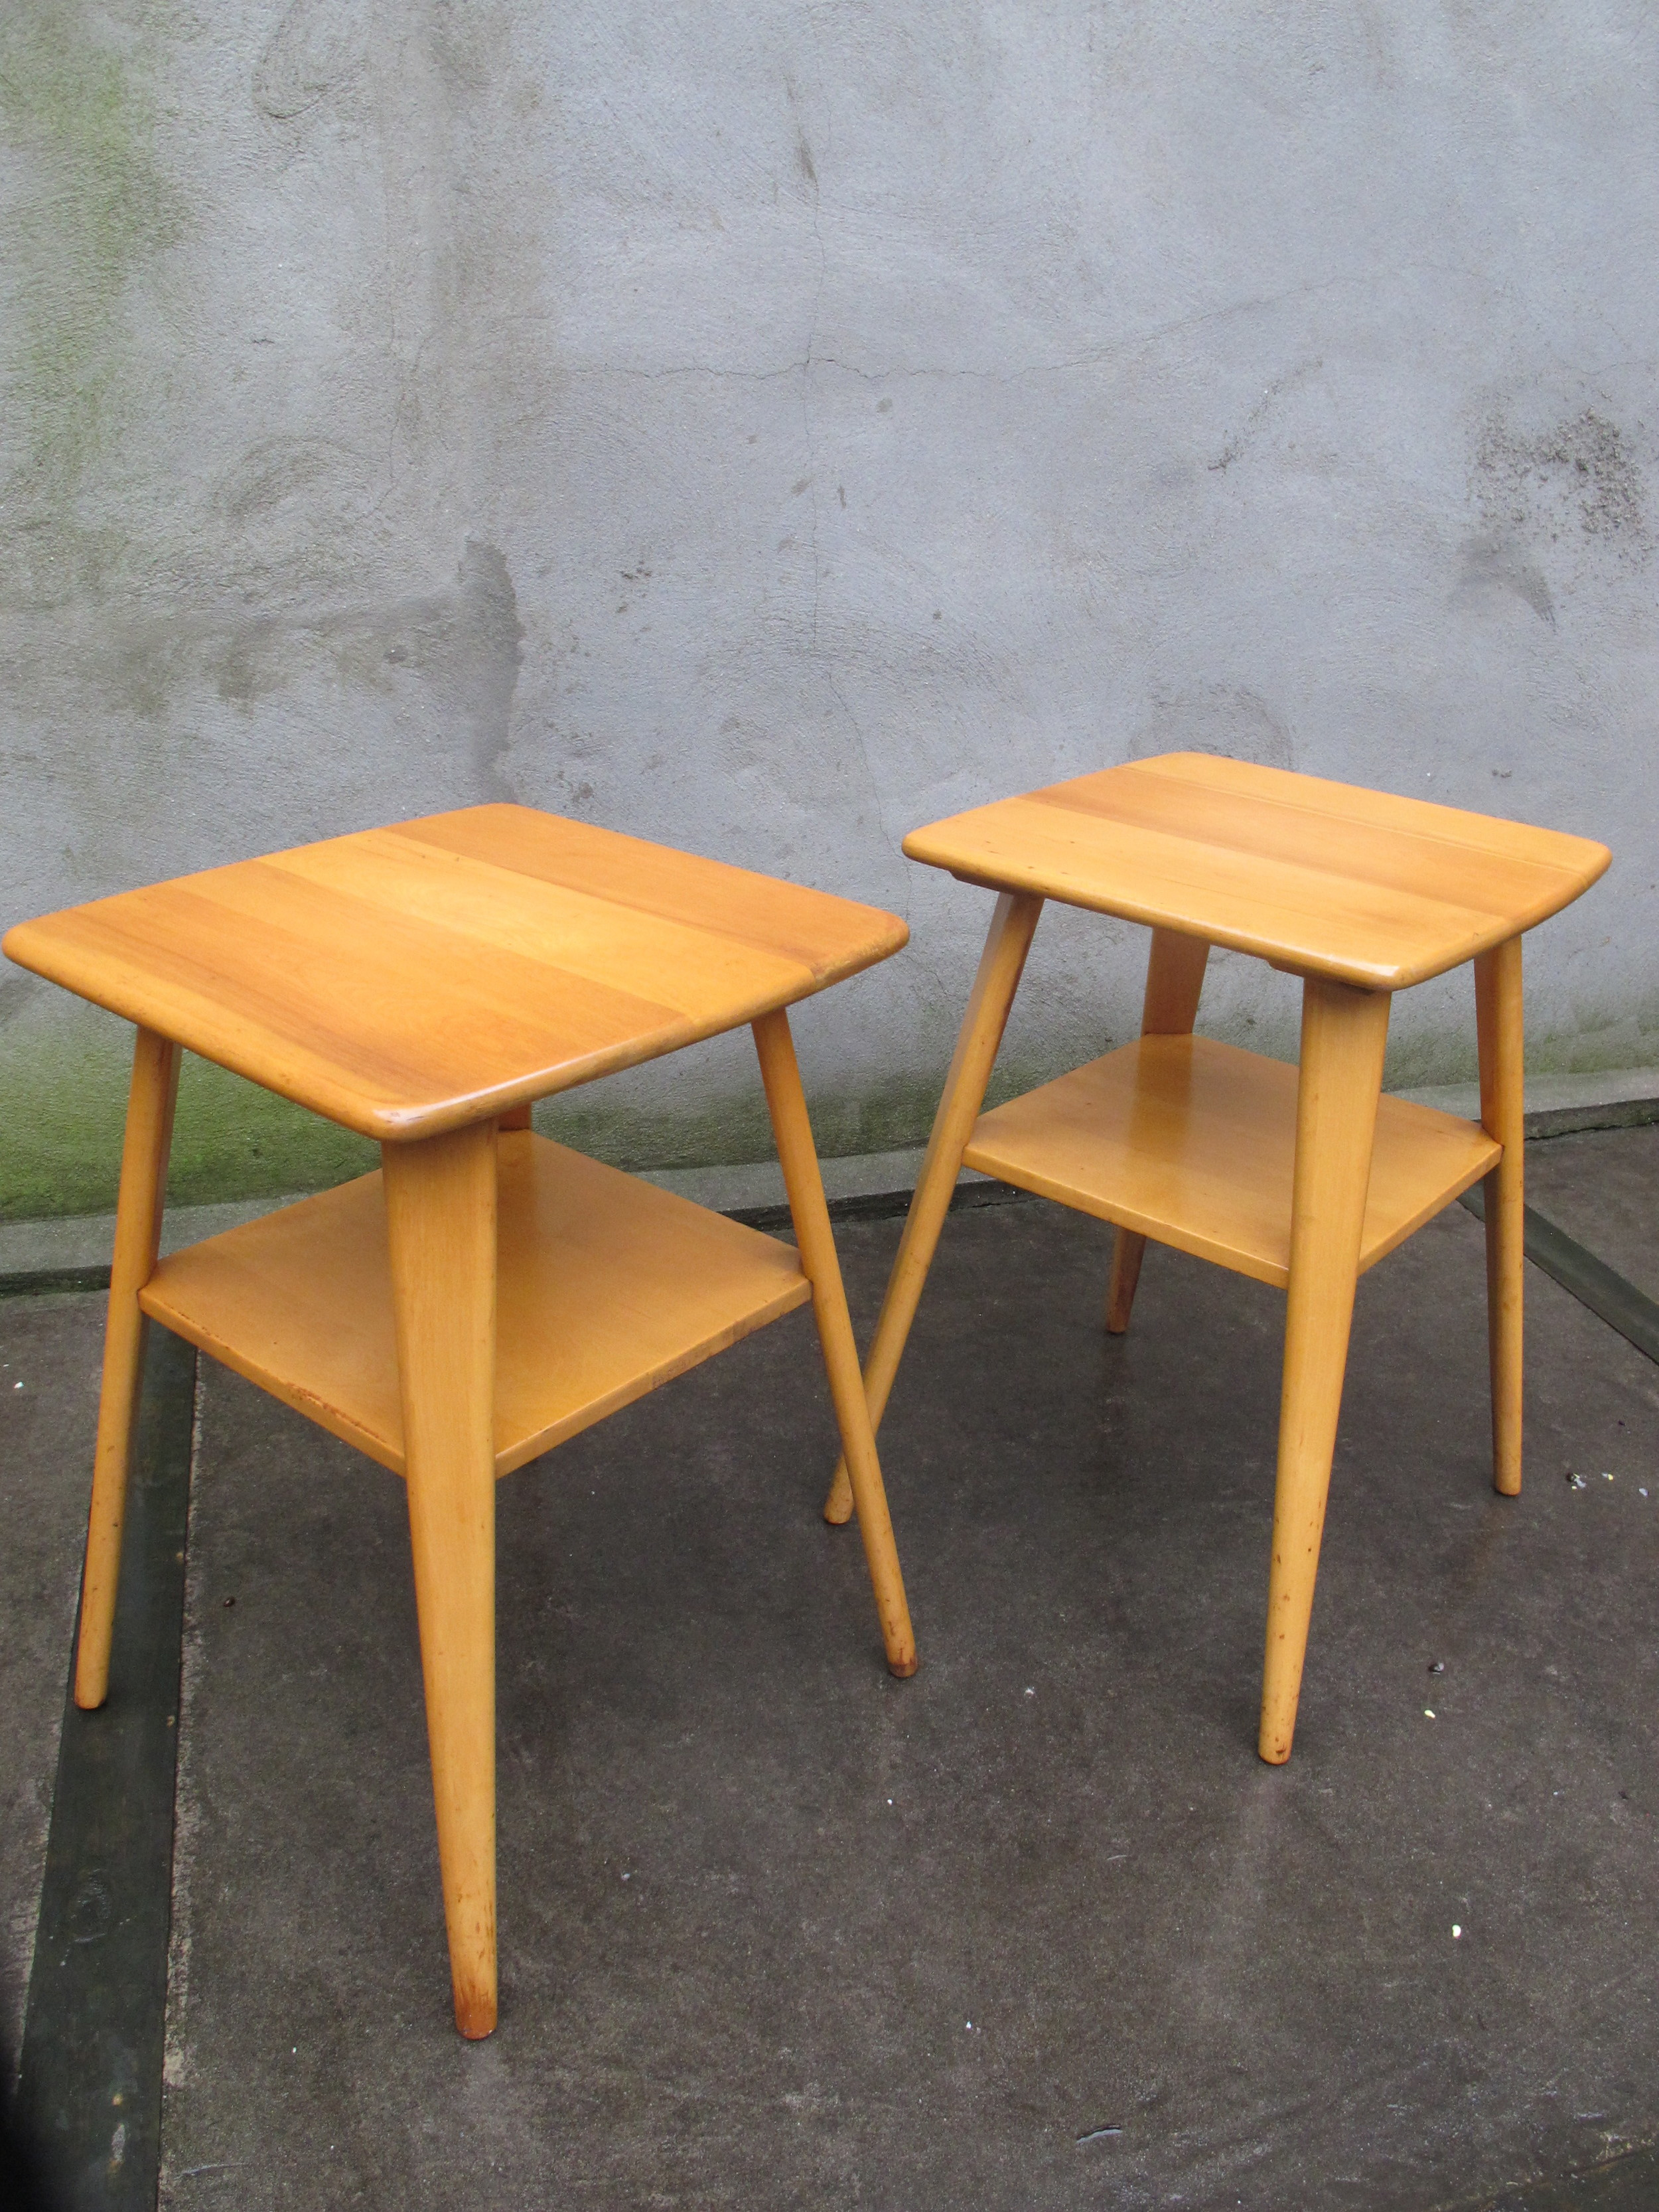 HEYWOOD WAKEFIELD STYLE MAPLE TWO-TIER SIDE TABLES